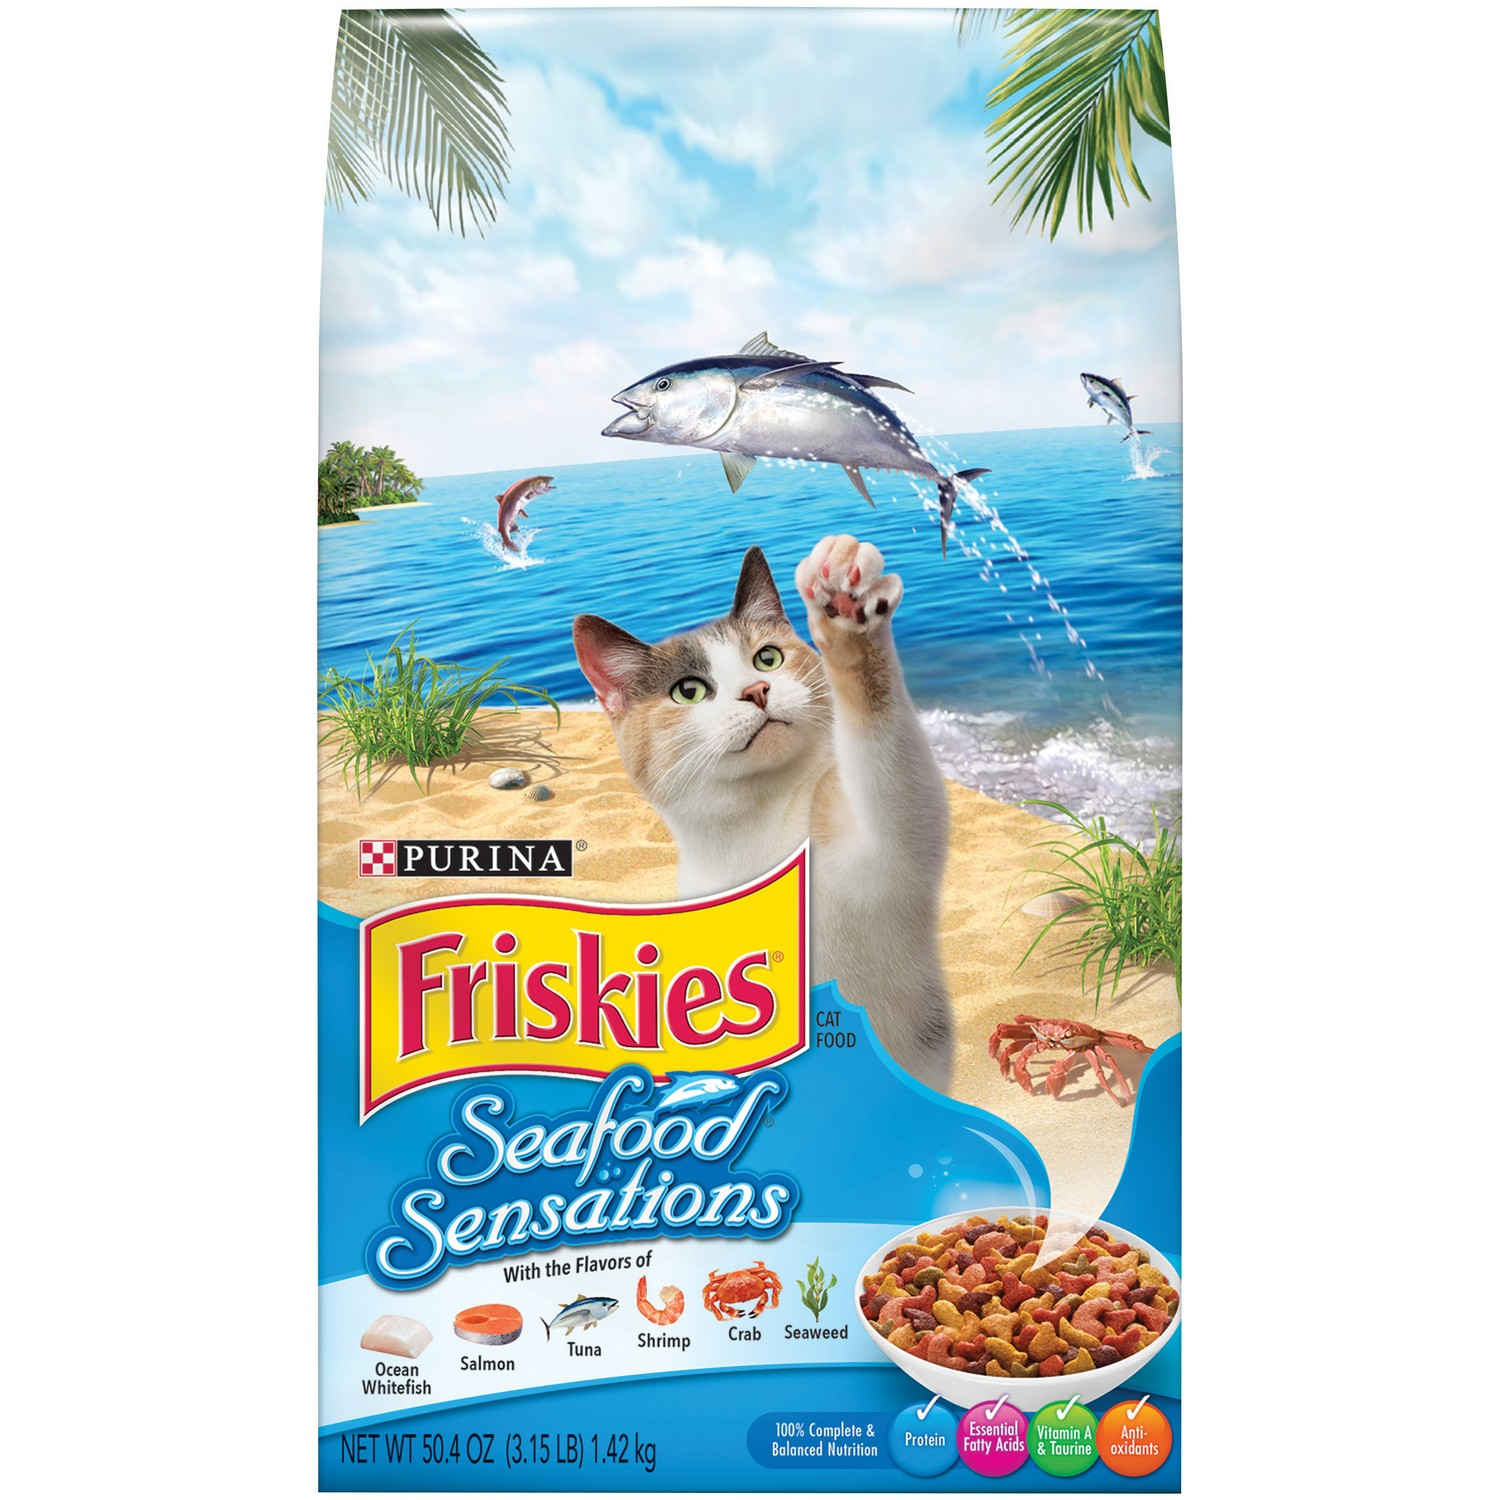 New Friskies Cat Food Coupons Available To Print